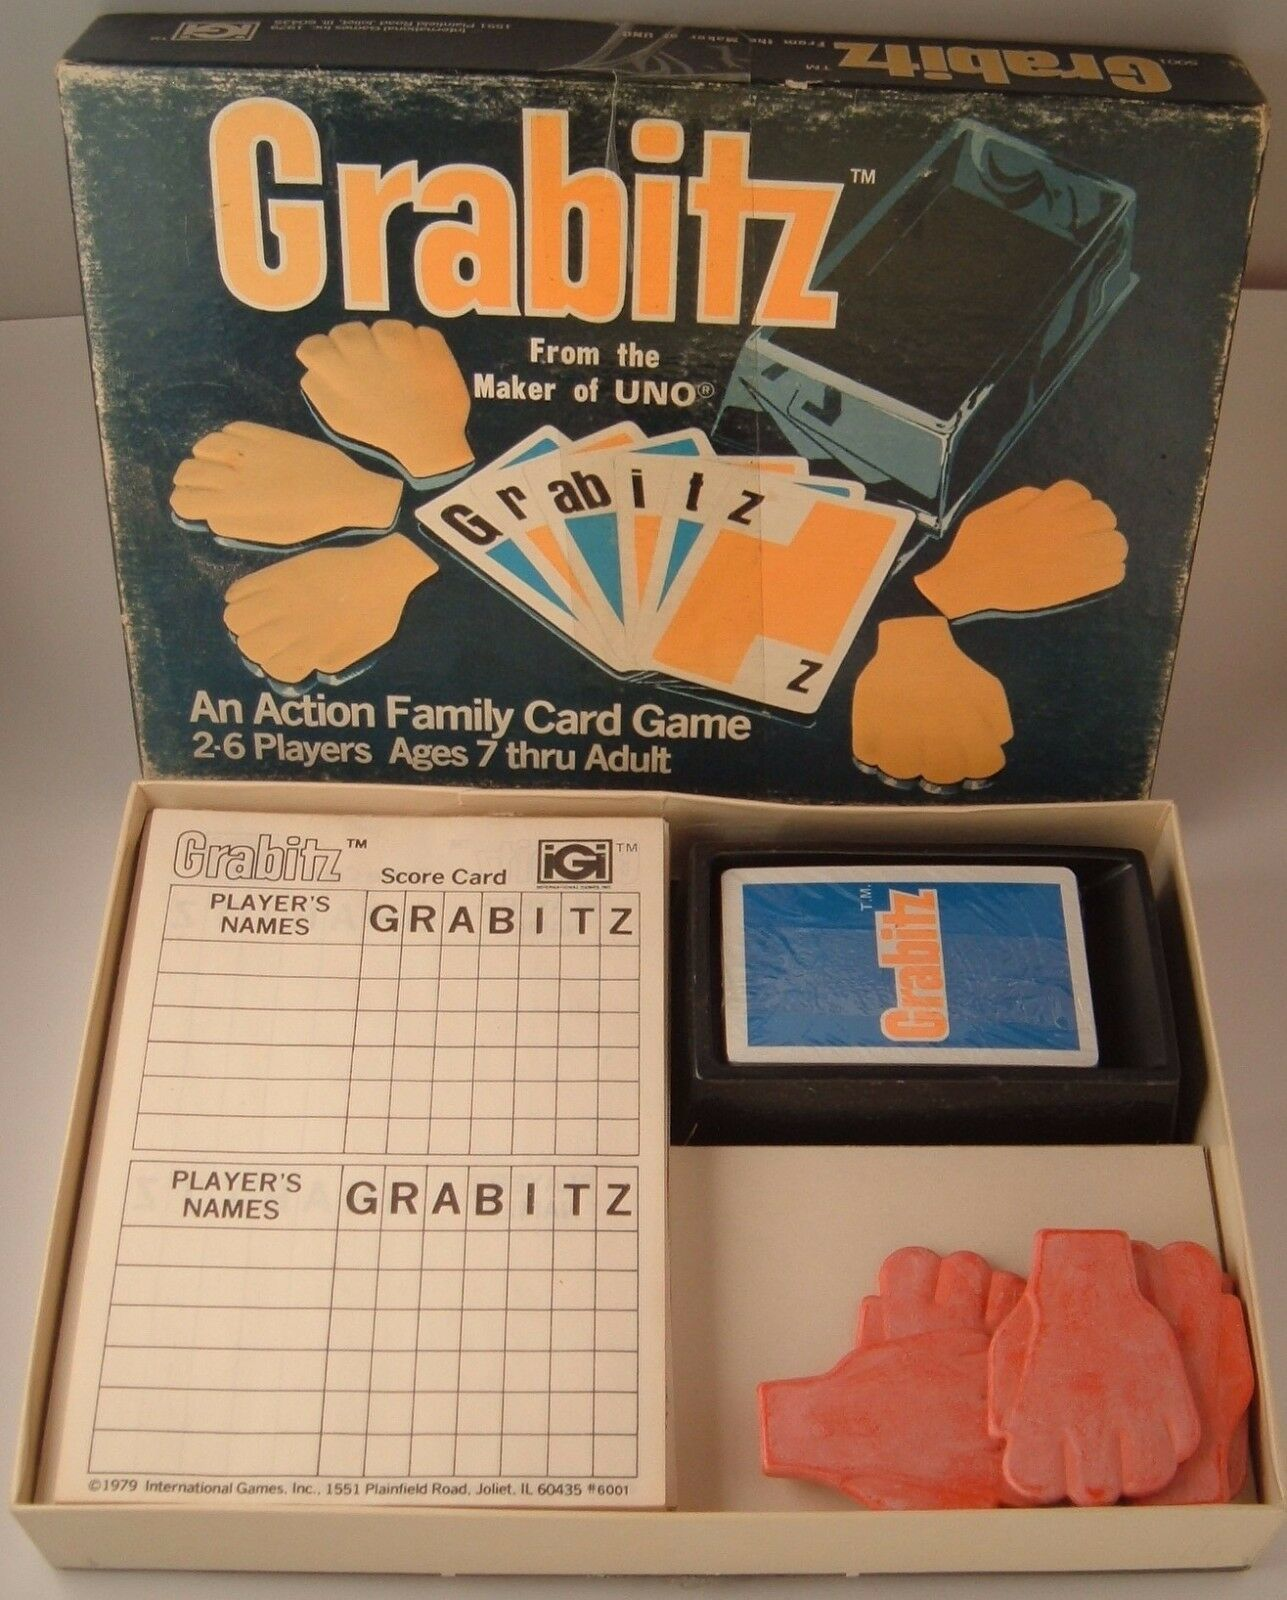 Primary image for Vintage 1979 Grabitz Action Family Card Game Unused cards still in plastic